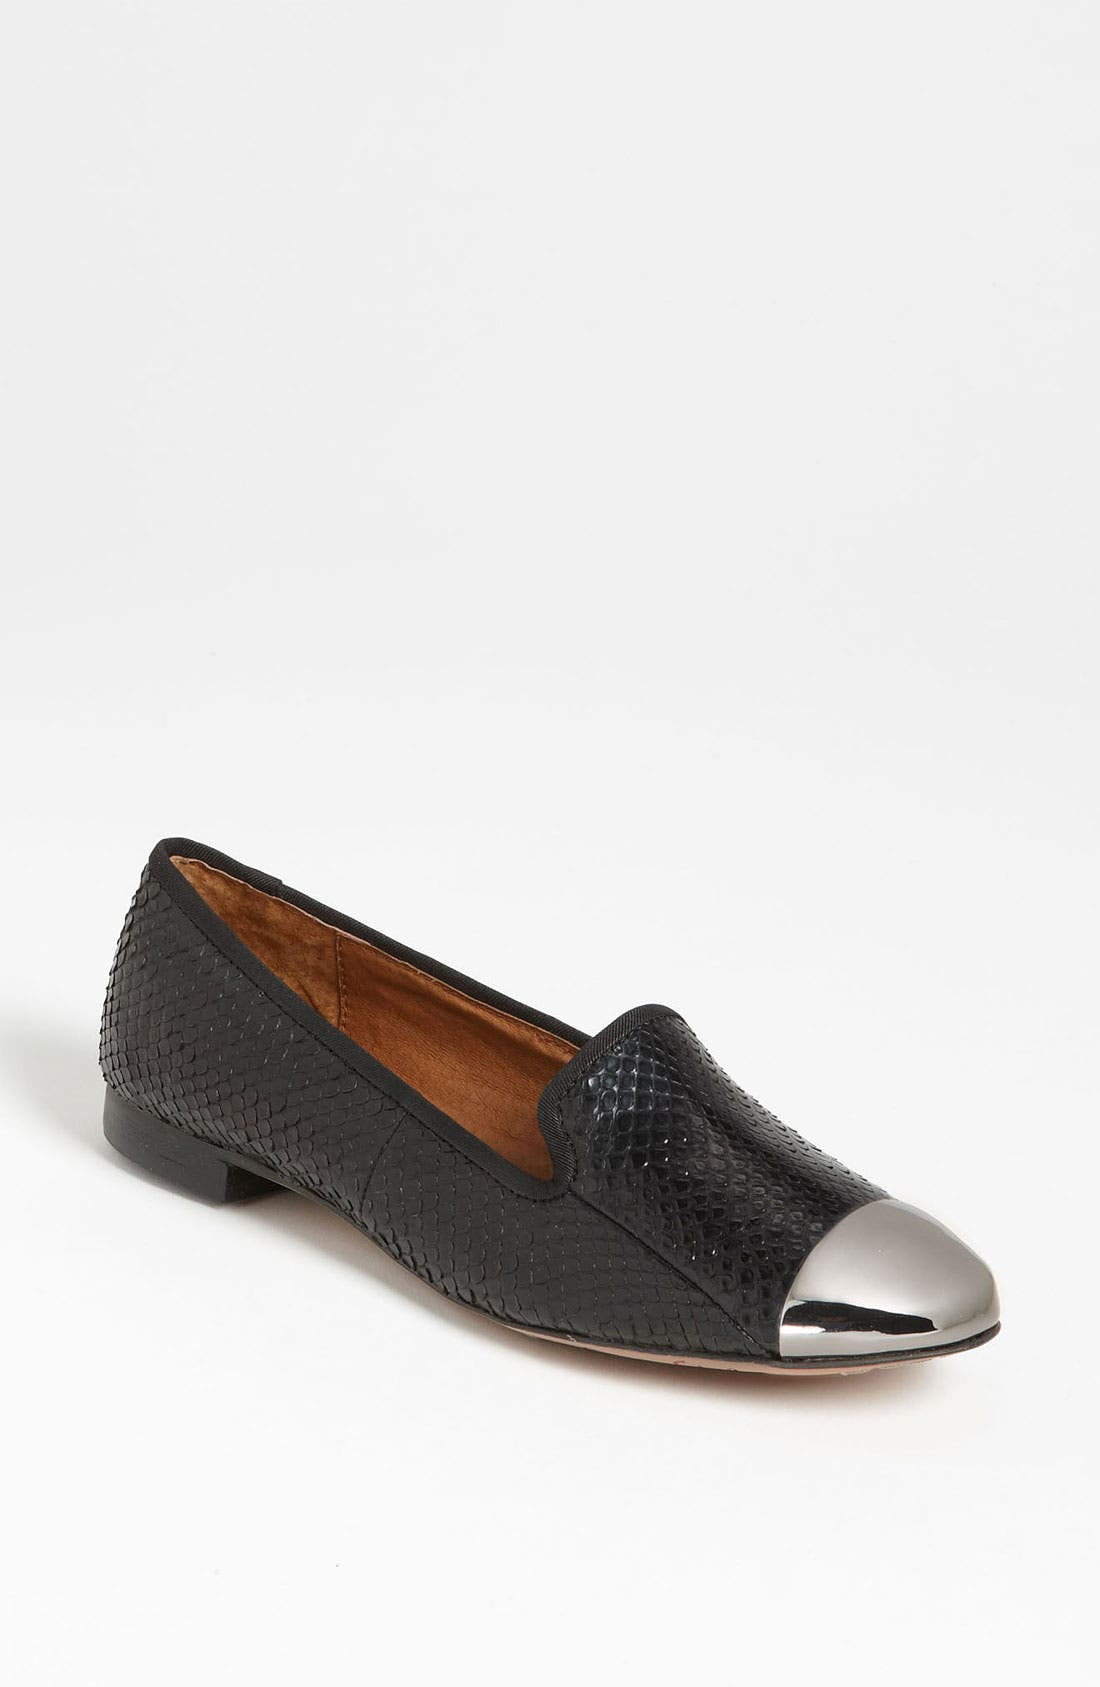 Alternate Image 1 Selected - Sam Edelman 'Aster' Flat